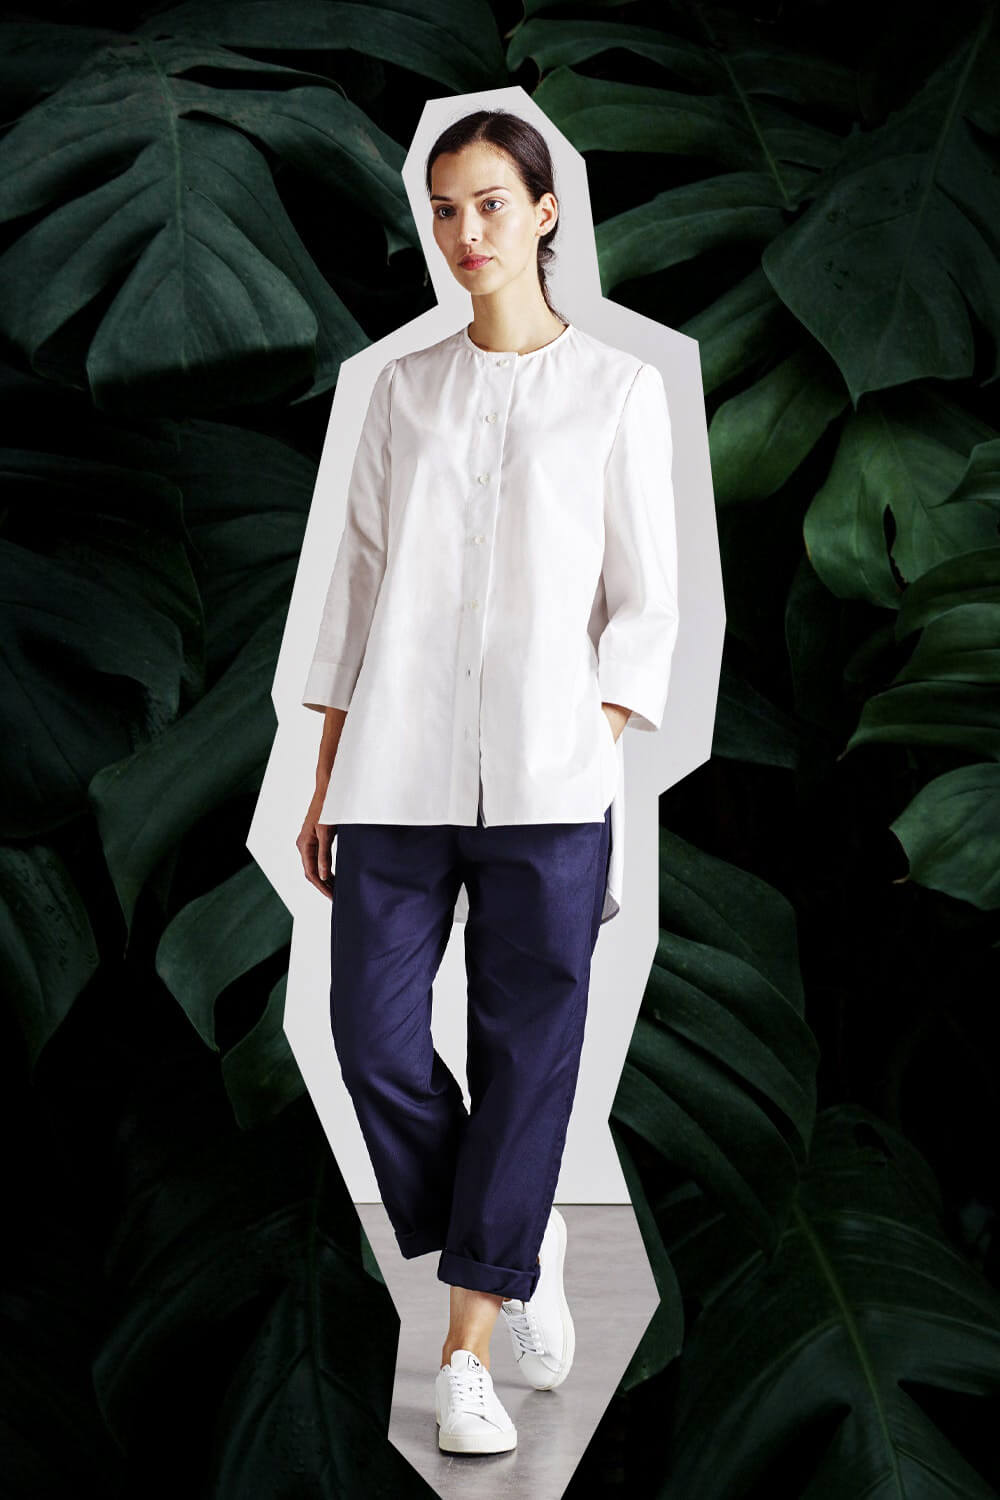 Alice Early minimalist fashion collection